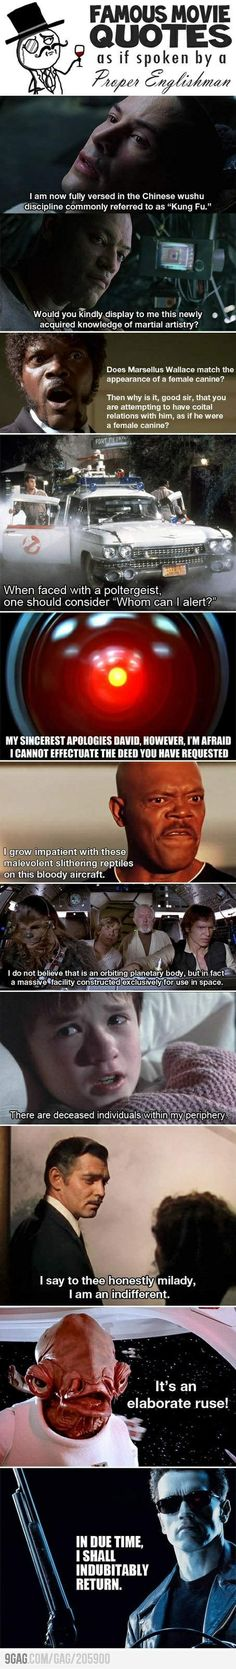 Famous Movie Quotes in Proper English